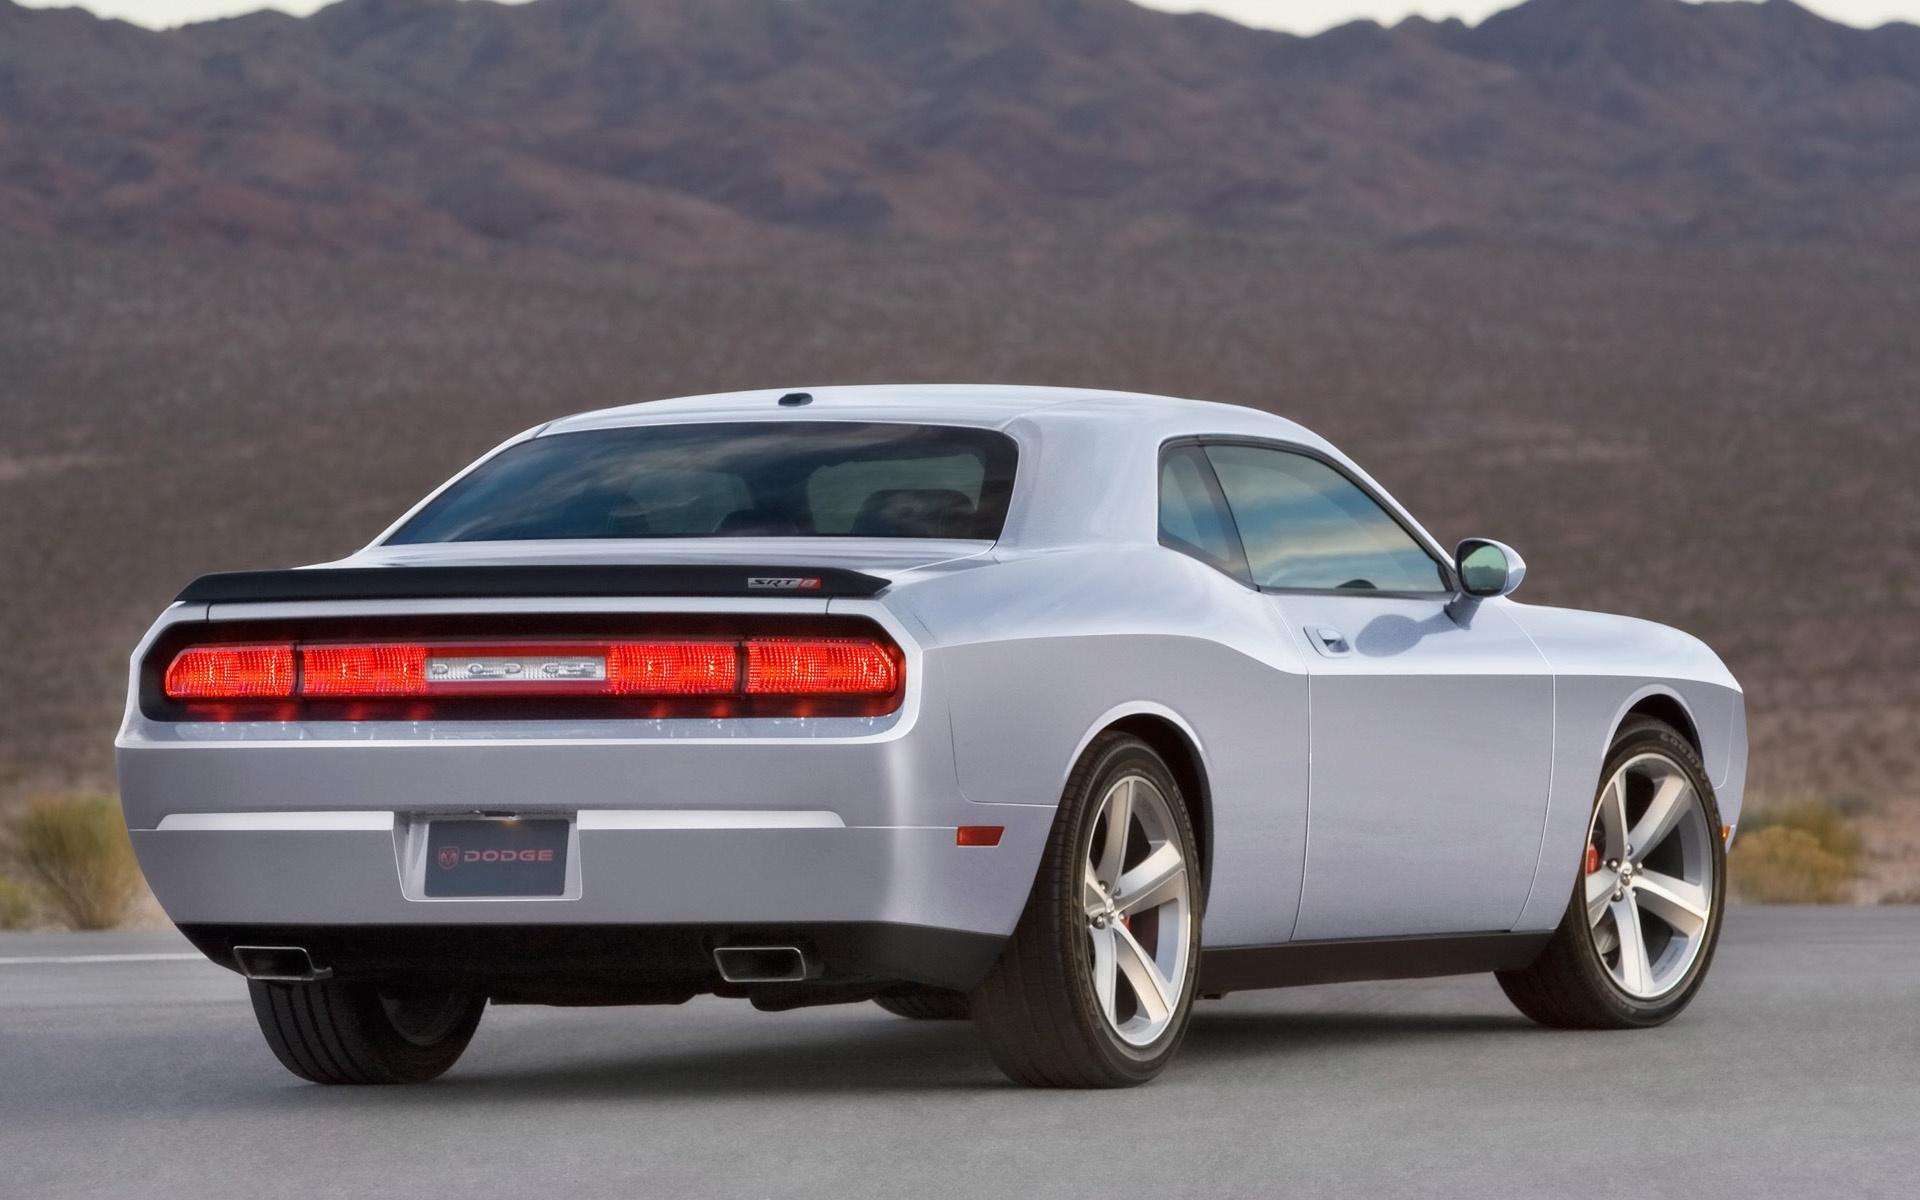 2009 Dodge Challenger Srt8 Rear Angle 1920x1200